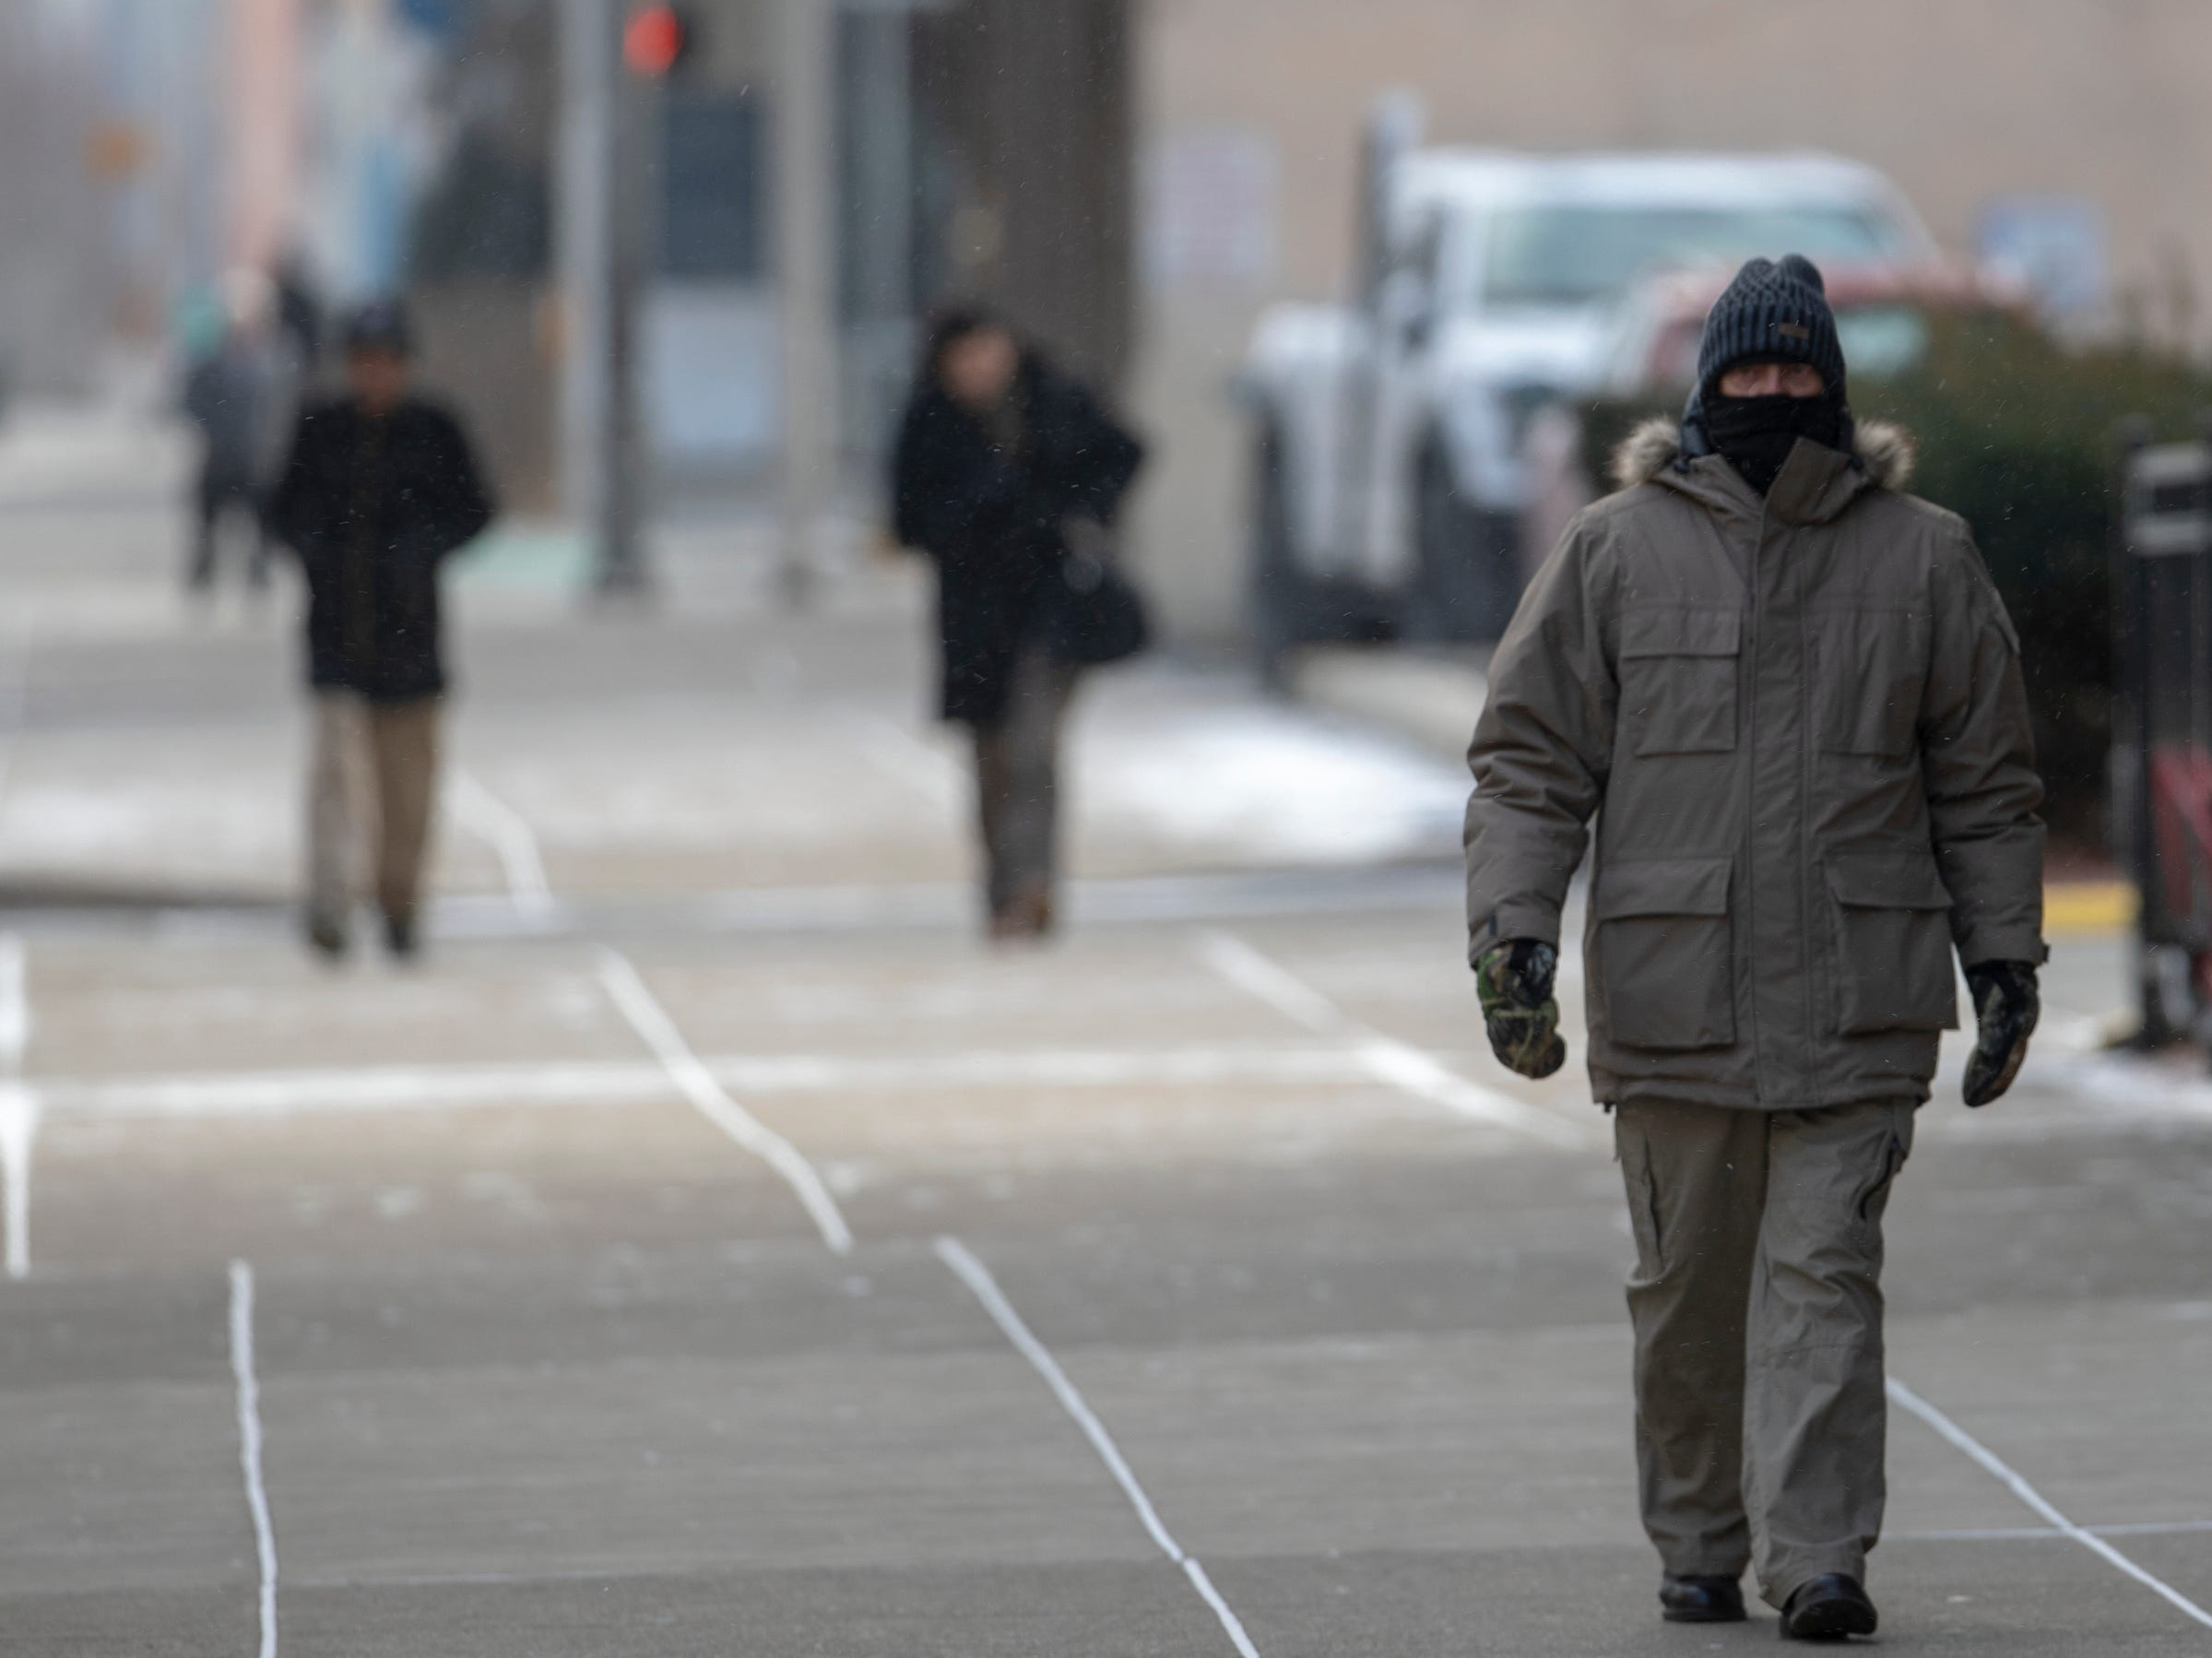 Downtown walkers bundle up on a cold day of about 15 degrees in central Indiana, Indianapolis, Tuesday, Jan. 29, 2019. Temperatures are expected to trend colder tomorrow, with more than ten below zero possible.